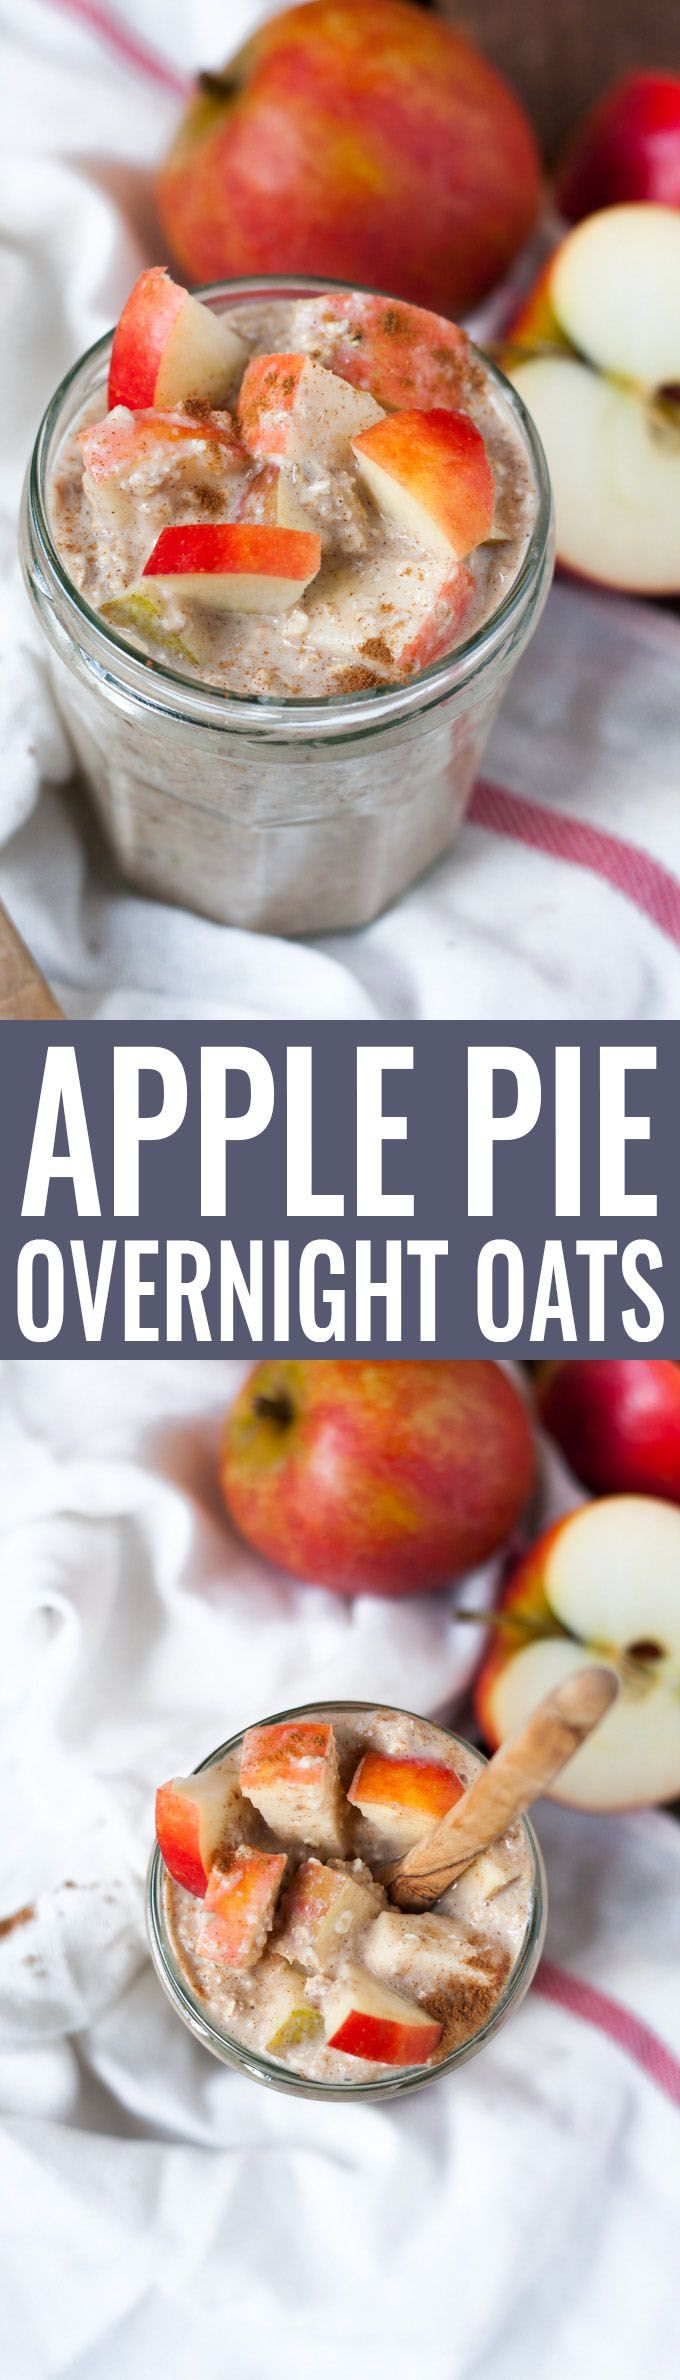 Apple Pie Overnight Oats (Low Carb Dessert Recipes)